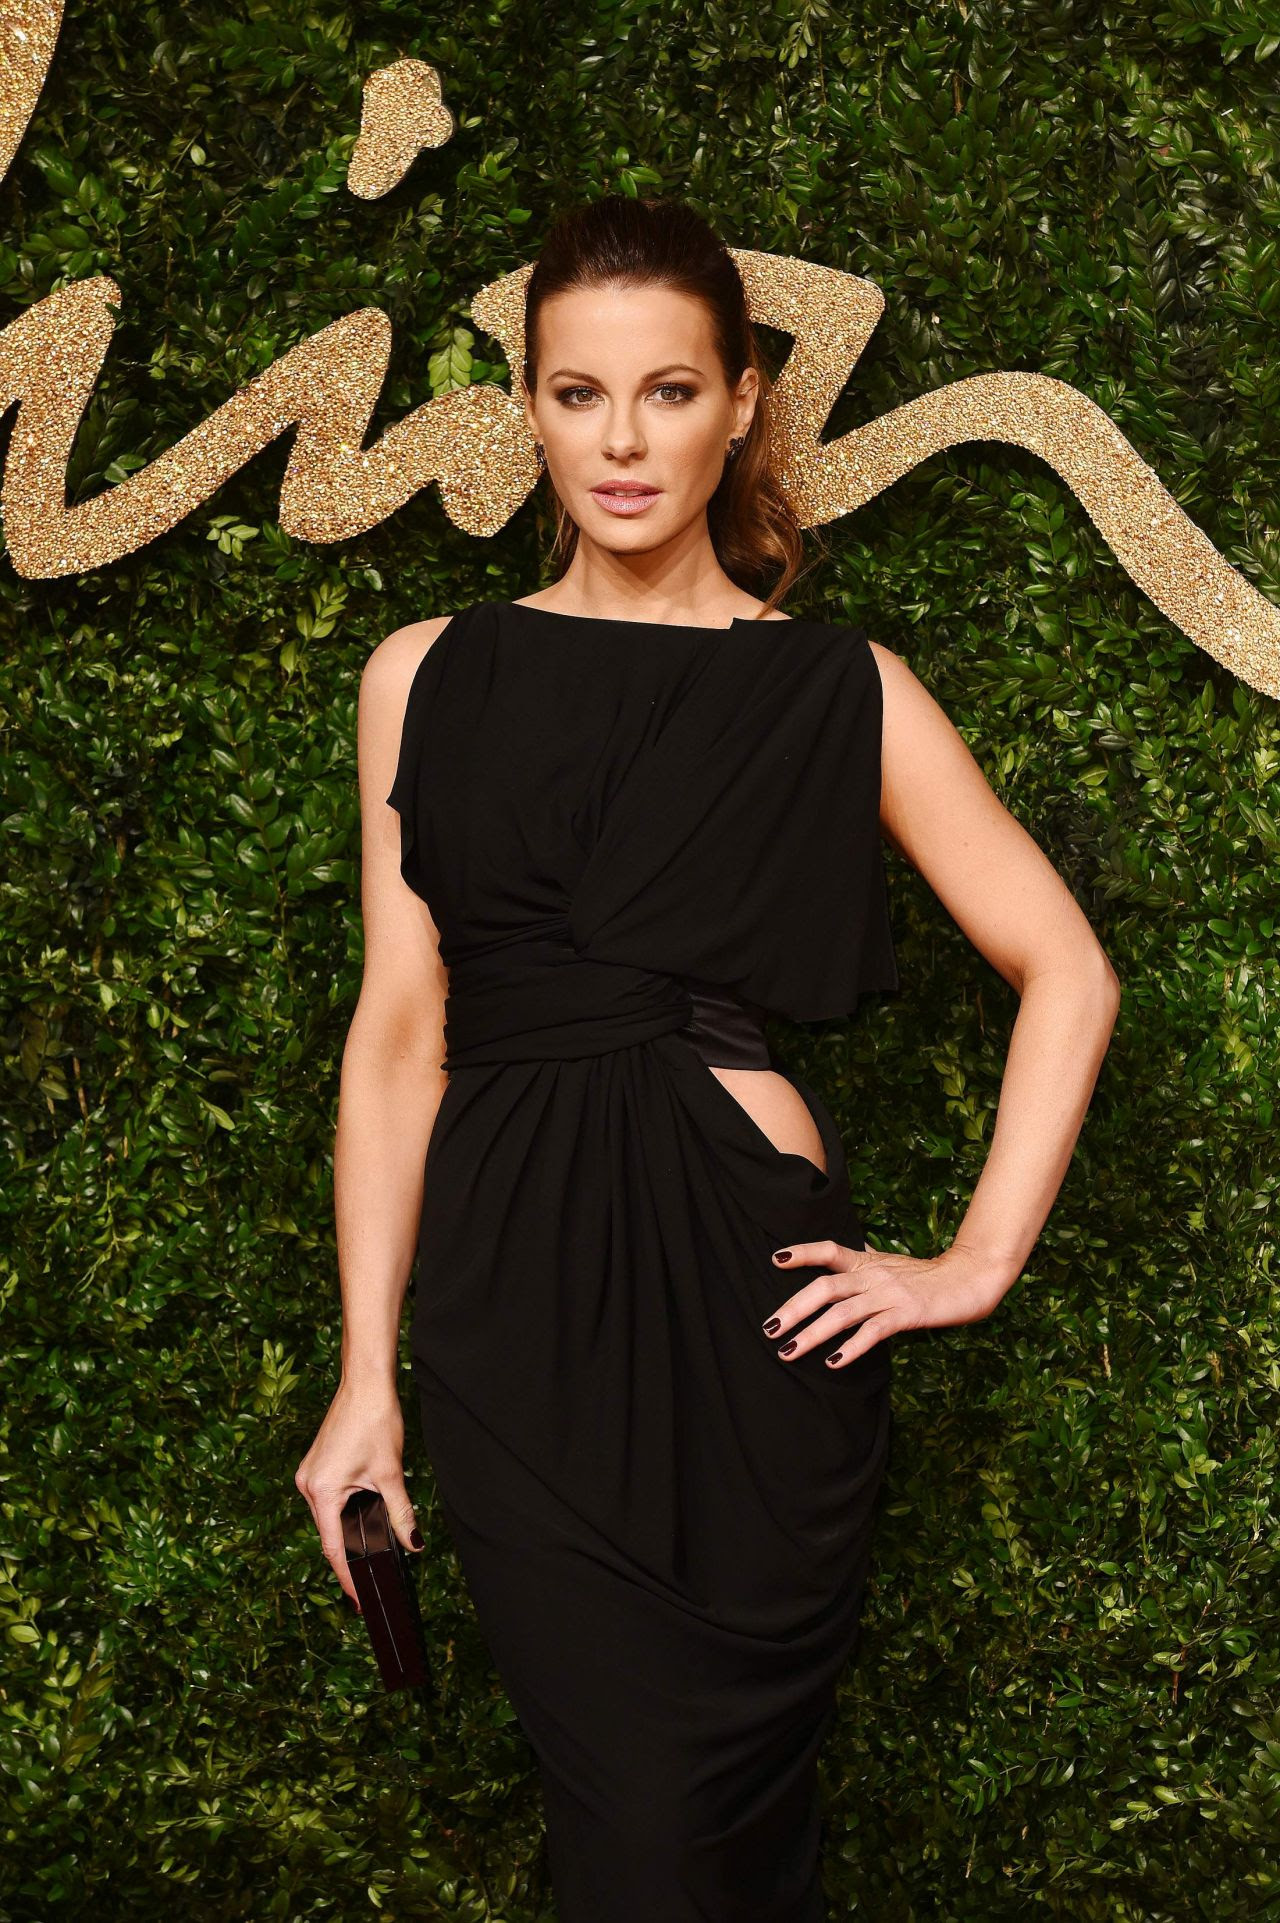 http://celebmafia.com/wp-content/uploads/2015/11/kate-beckinsale-british-fashion-awards-2015-at-london-coliseum_4.jpg